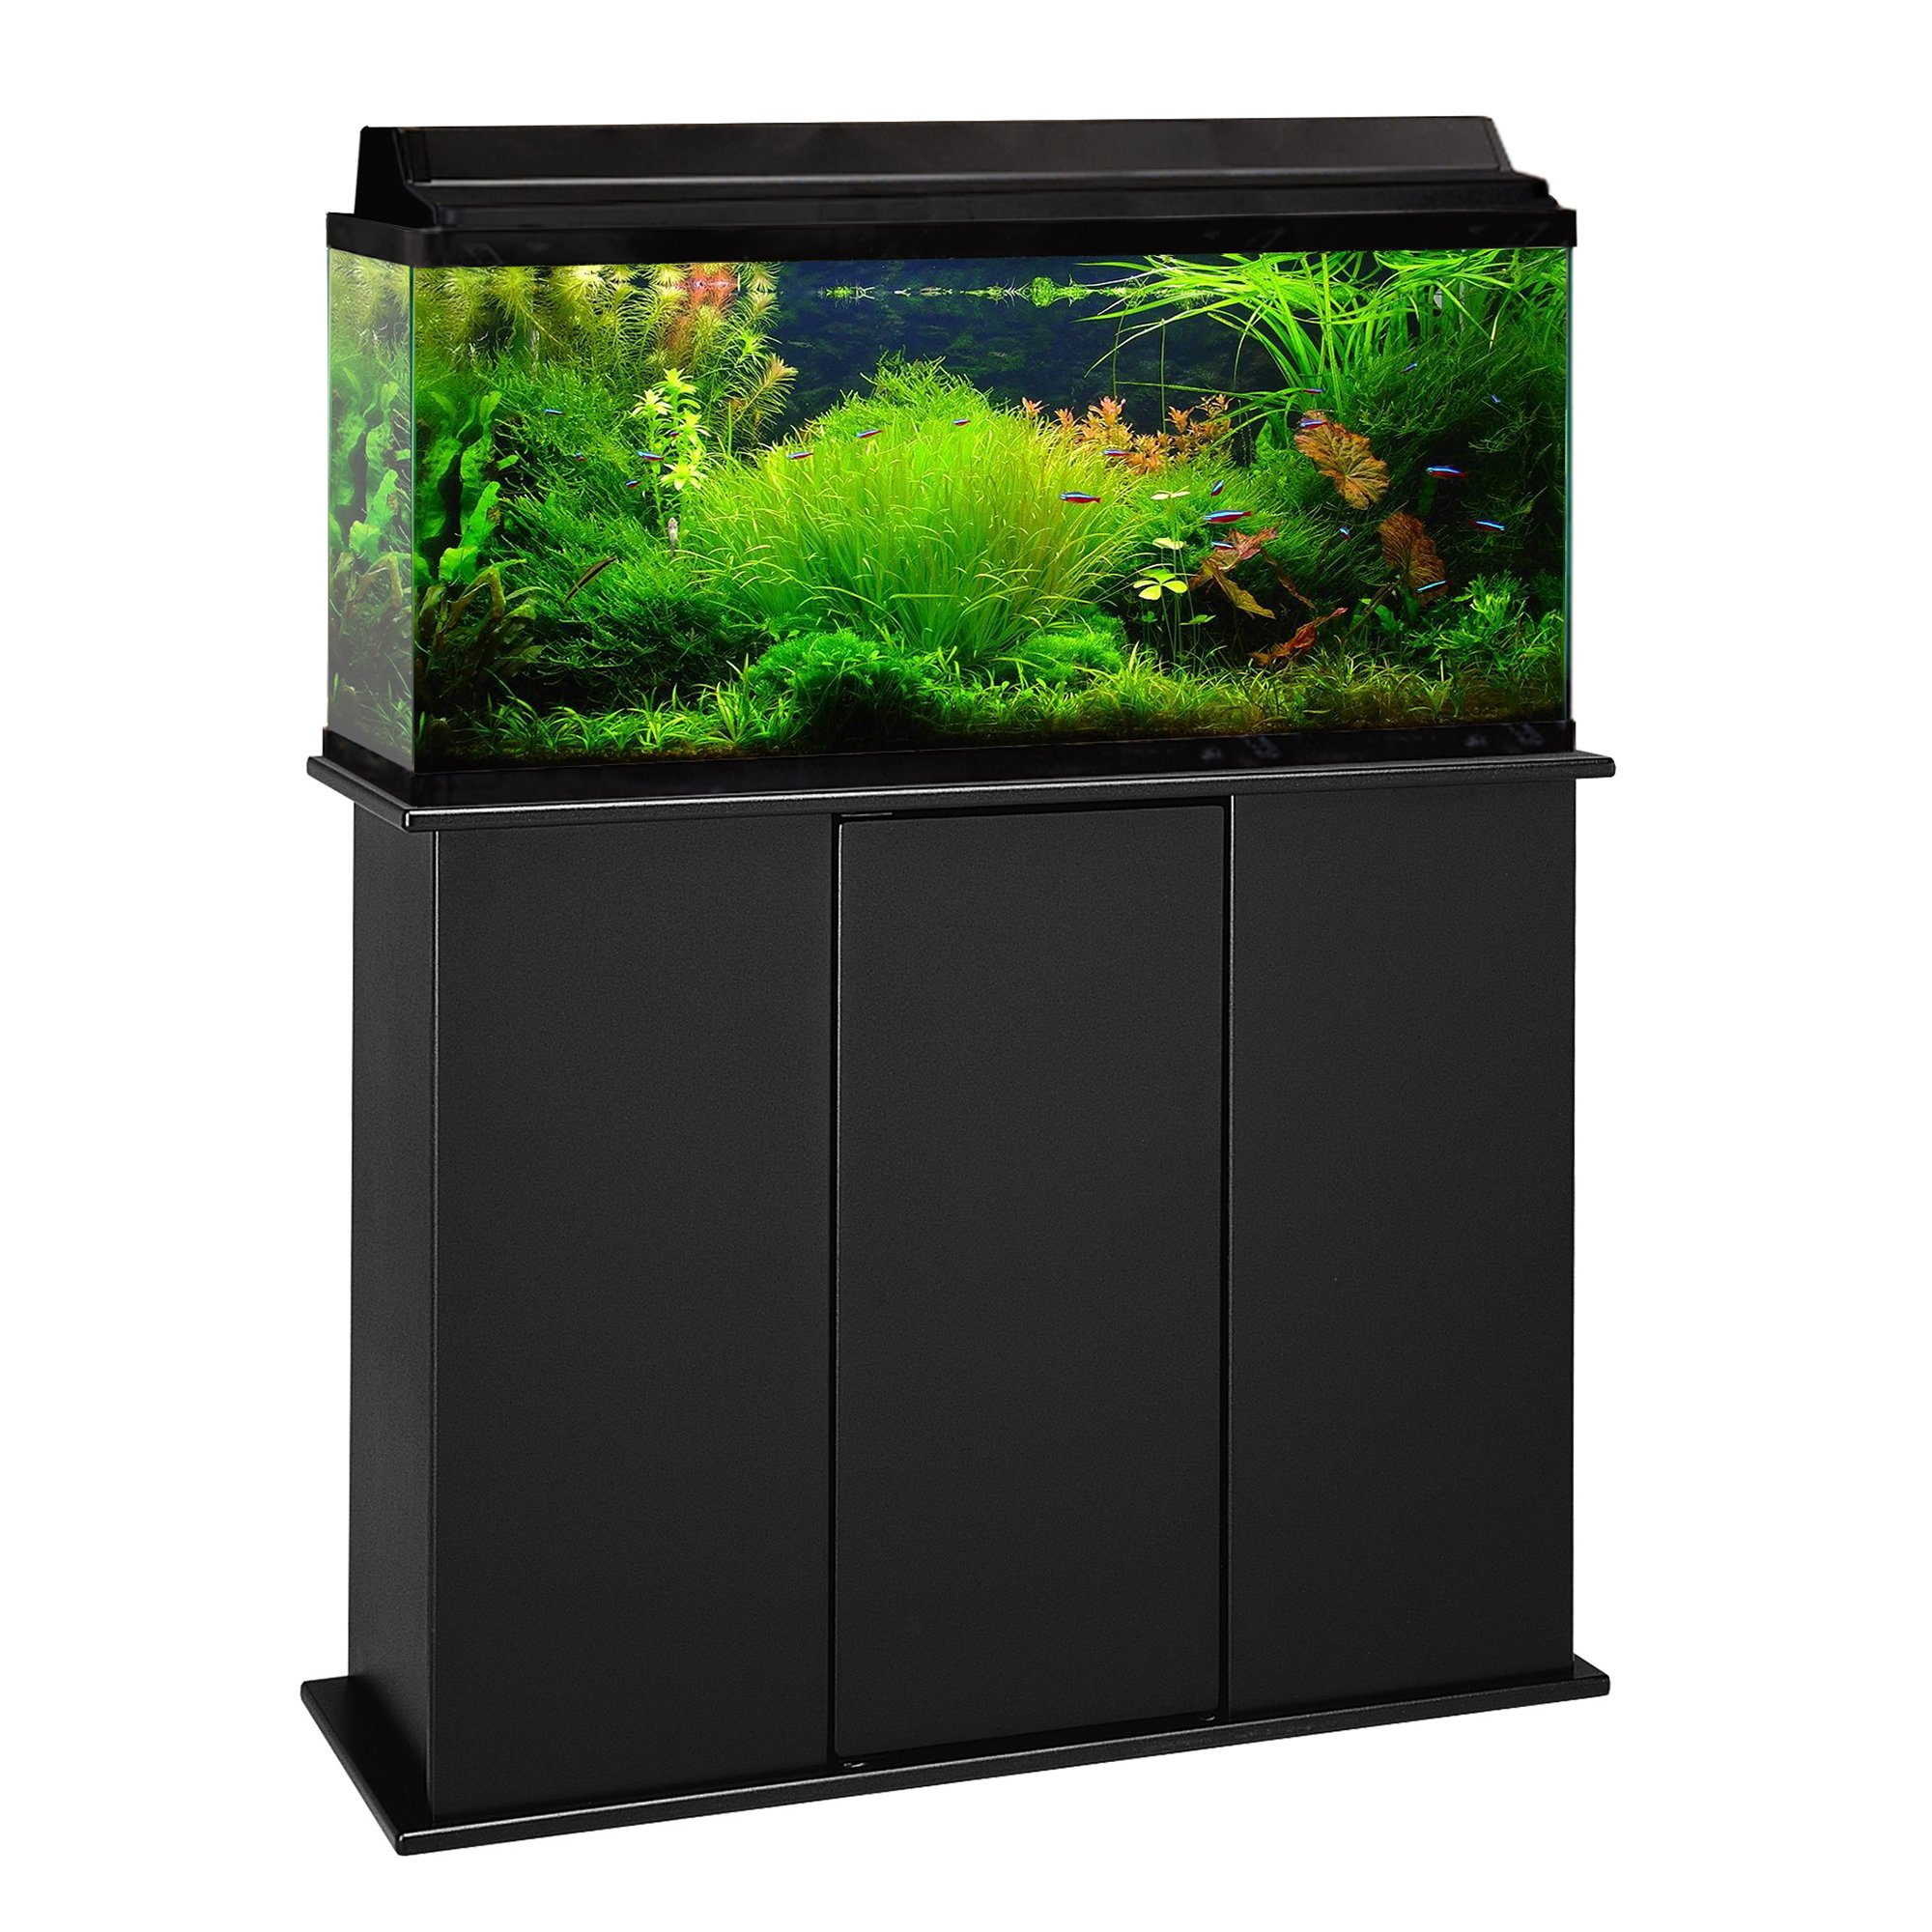 Aquatic Fundamentals 30/38/45 Gallon Upright Aquarium Stand  sc 1 st  Petco & Aquarium Stands Canopies u0026 Cabinets | Petco Store